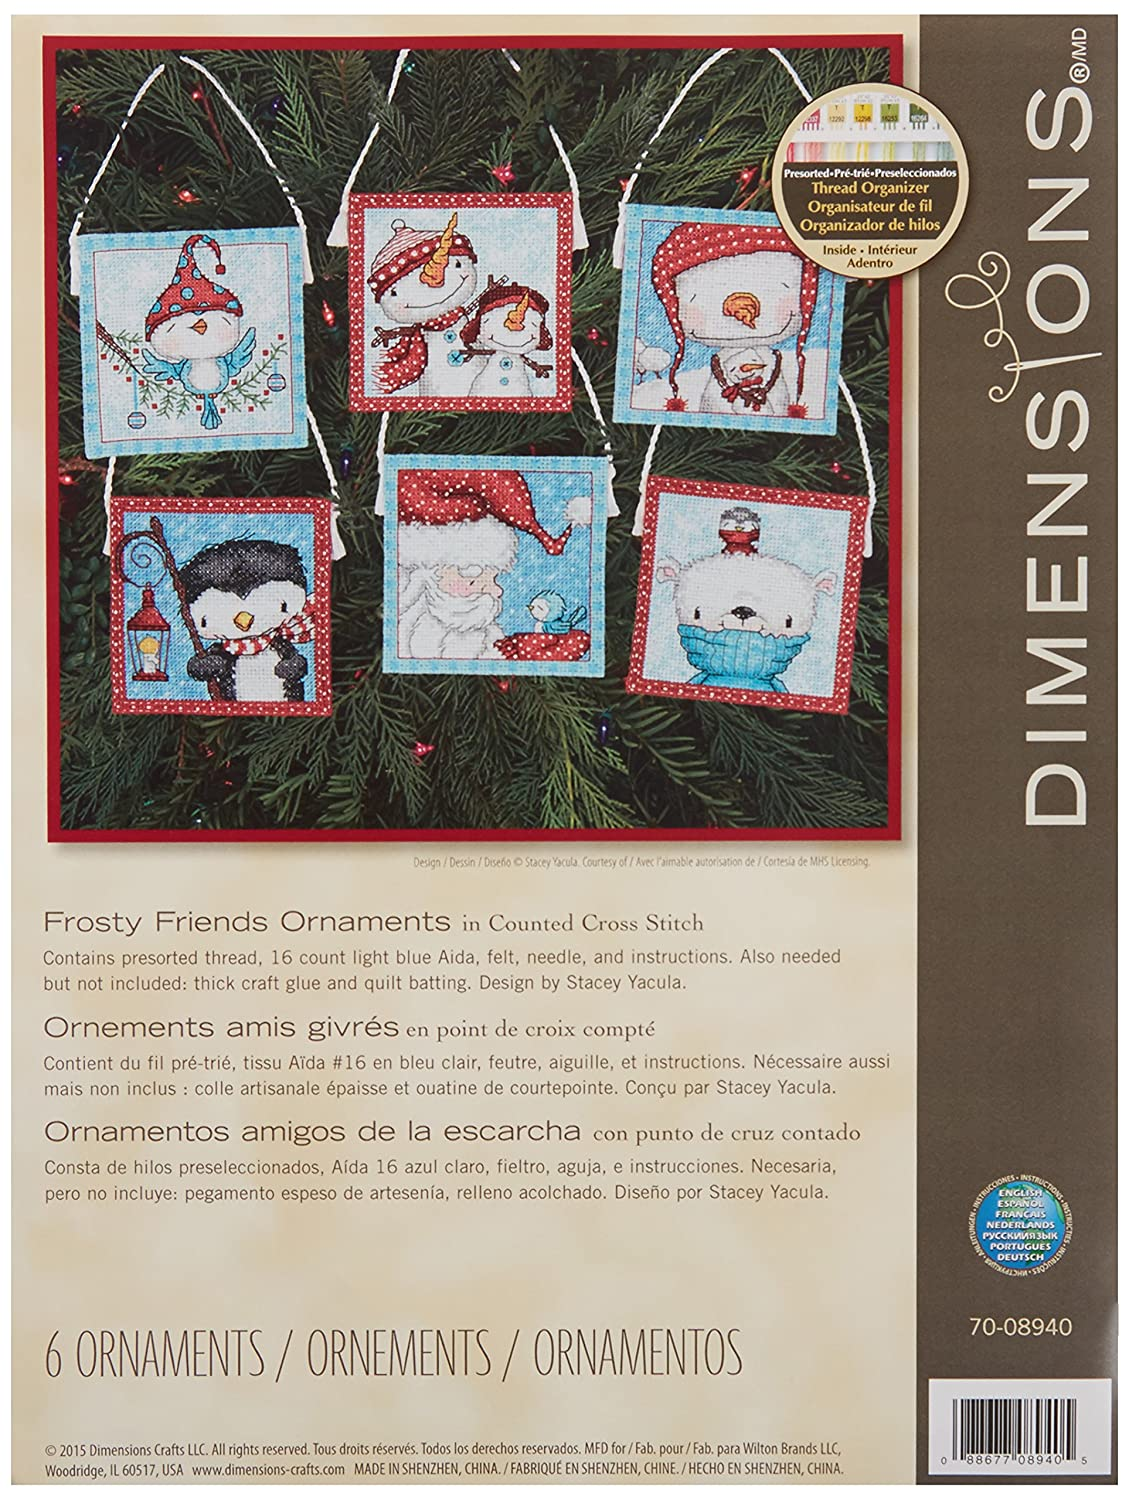 Dimensions Crafts 70-08940 Needlecraft Frosty Friends Ornaments in Counted Cross Stitch IDEAL DESIGN ENTERPRISES CO. LTD